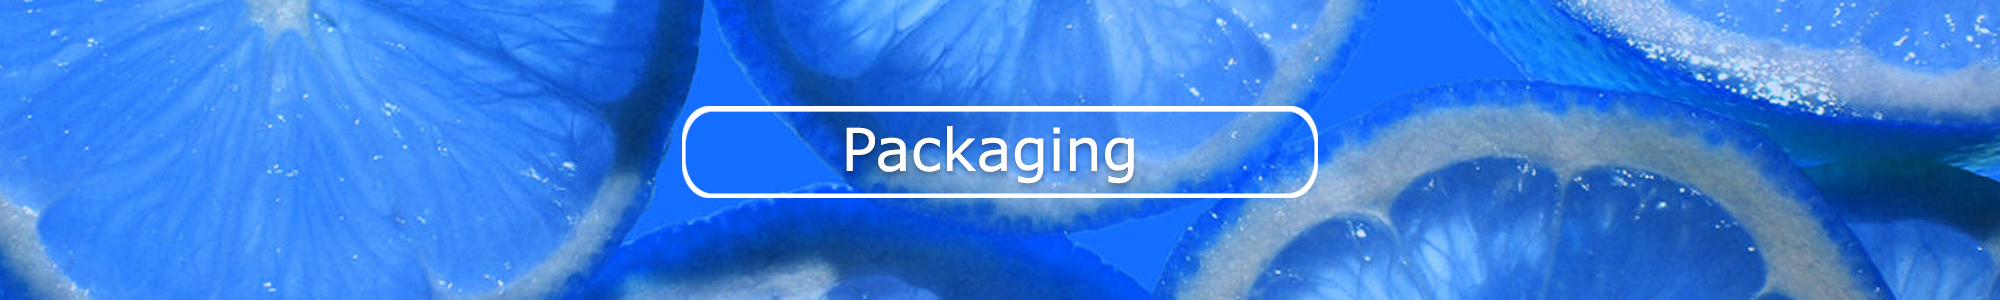 CPA Recruitment - Packaging Jobs